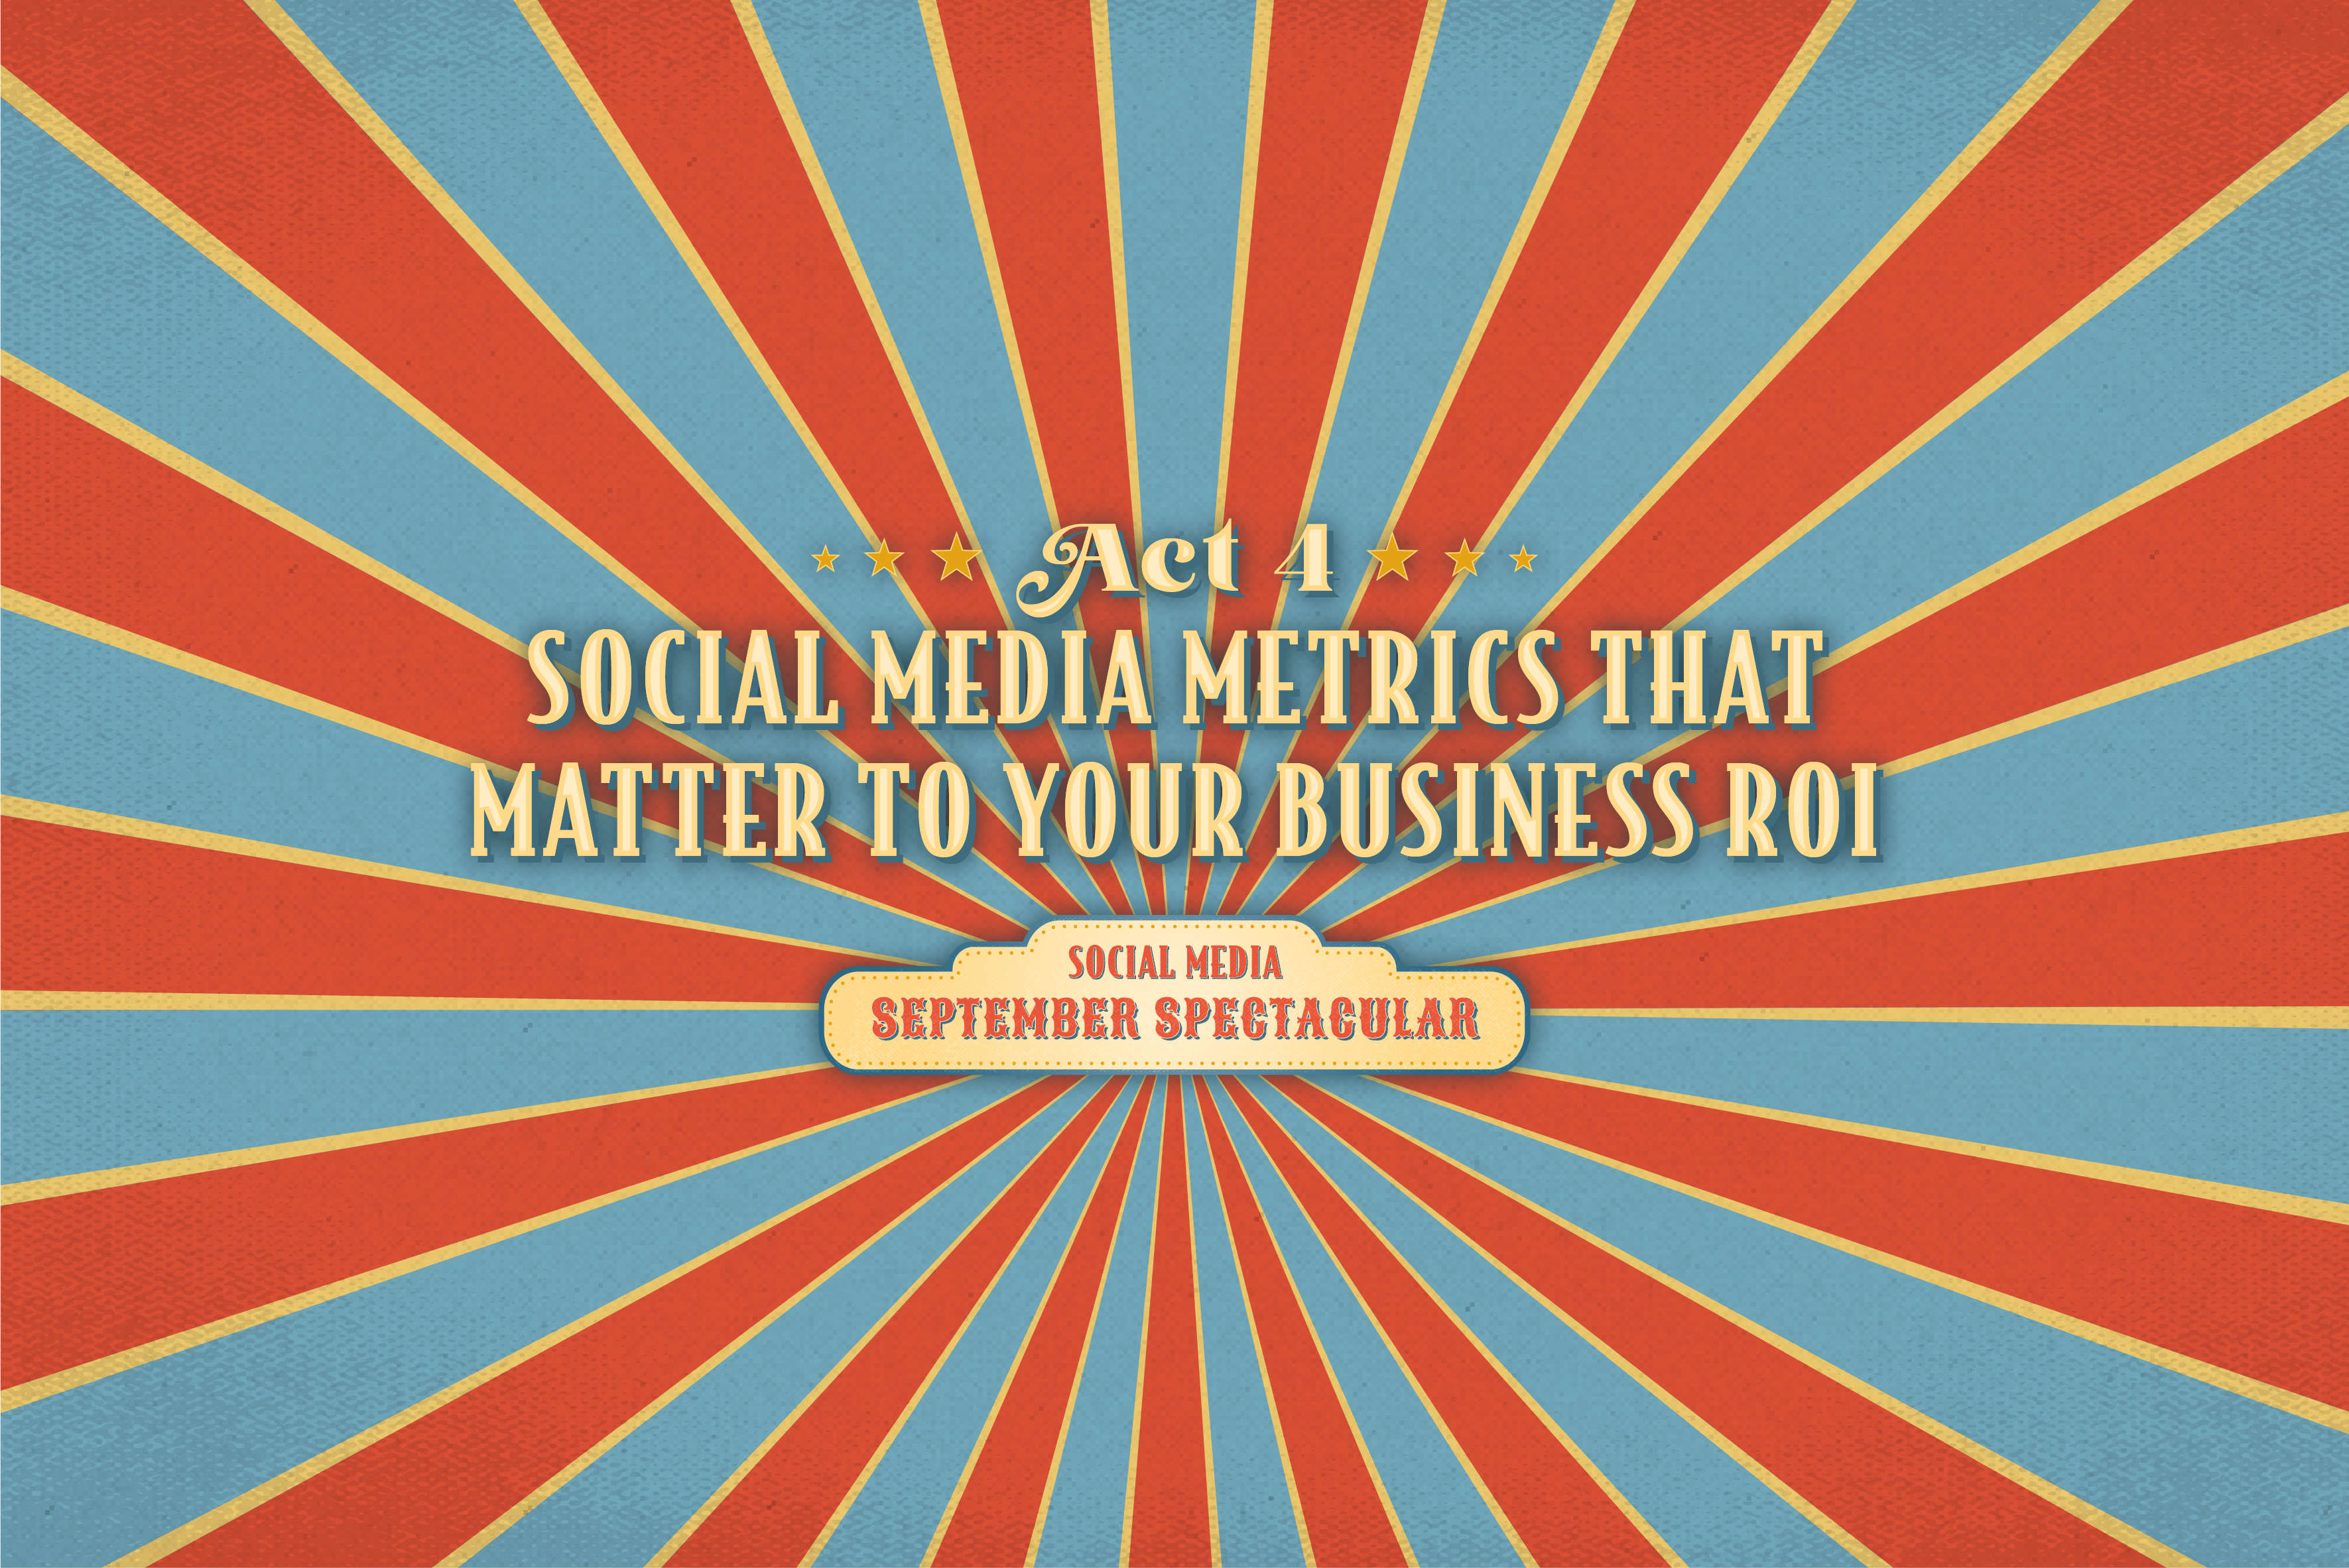 Social media metrics that matter to your business roi